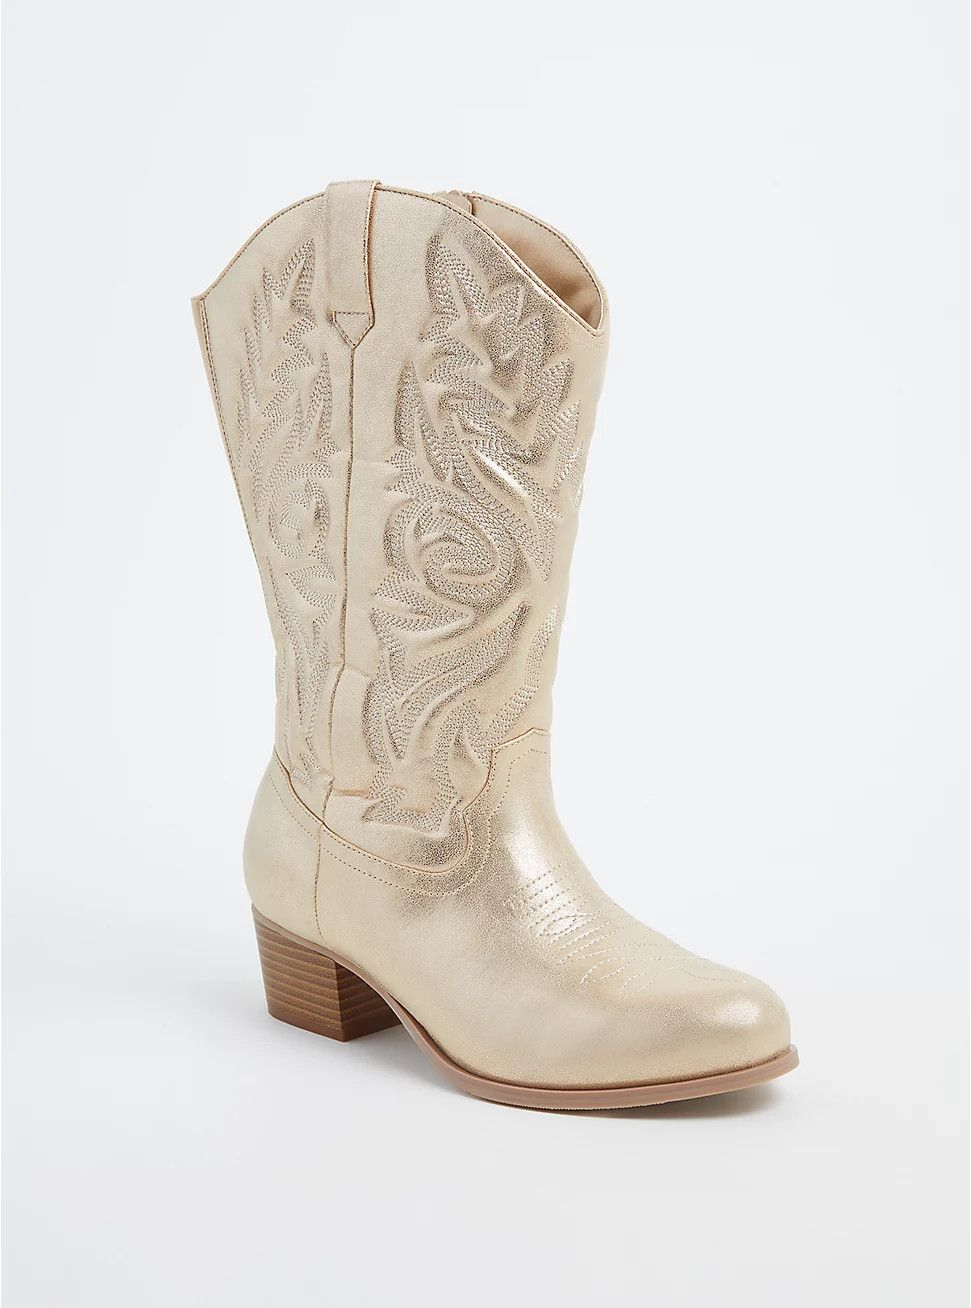 Wide Width Cowboy Boots For Fall